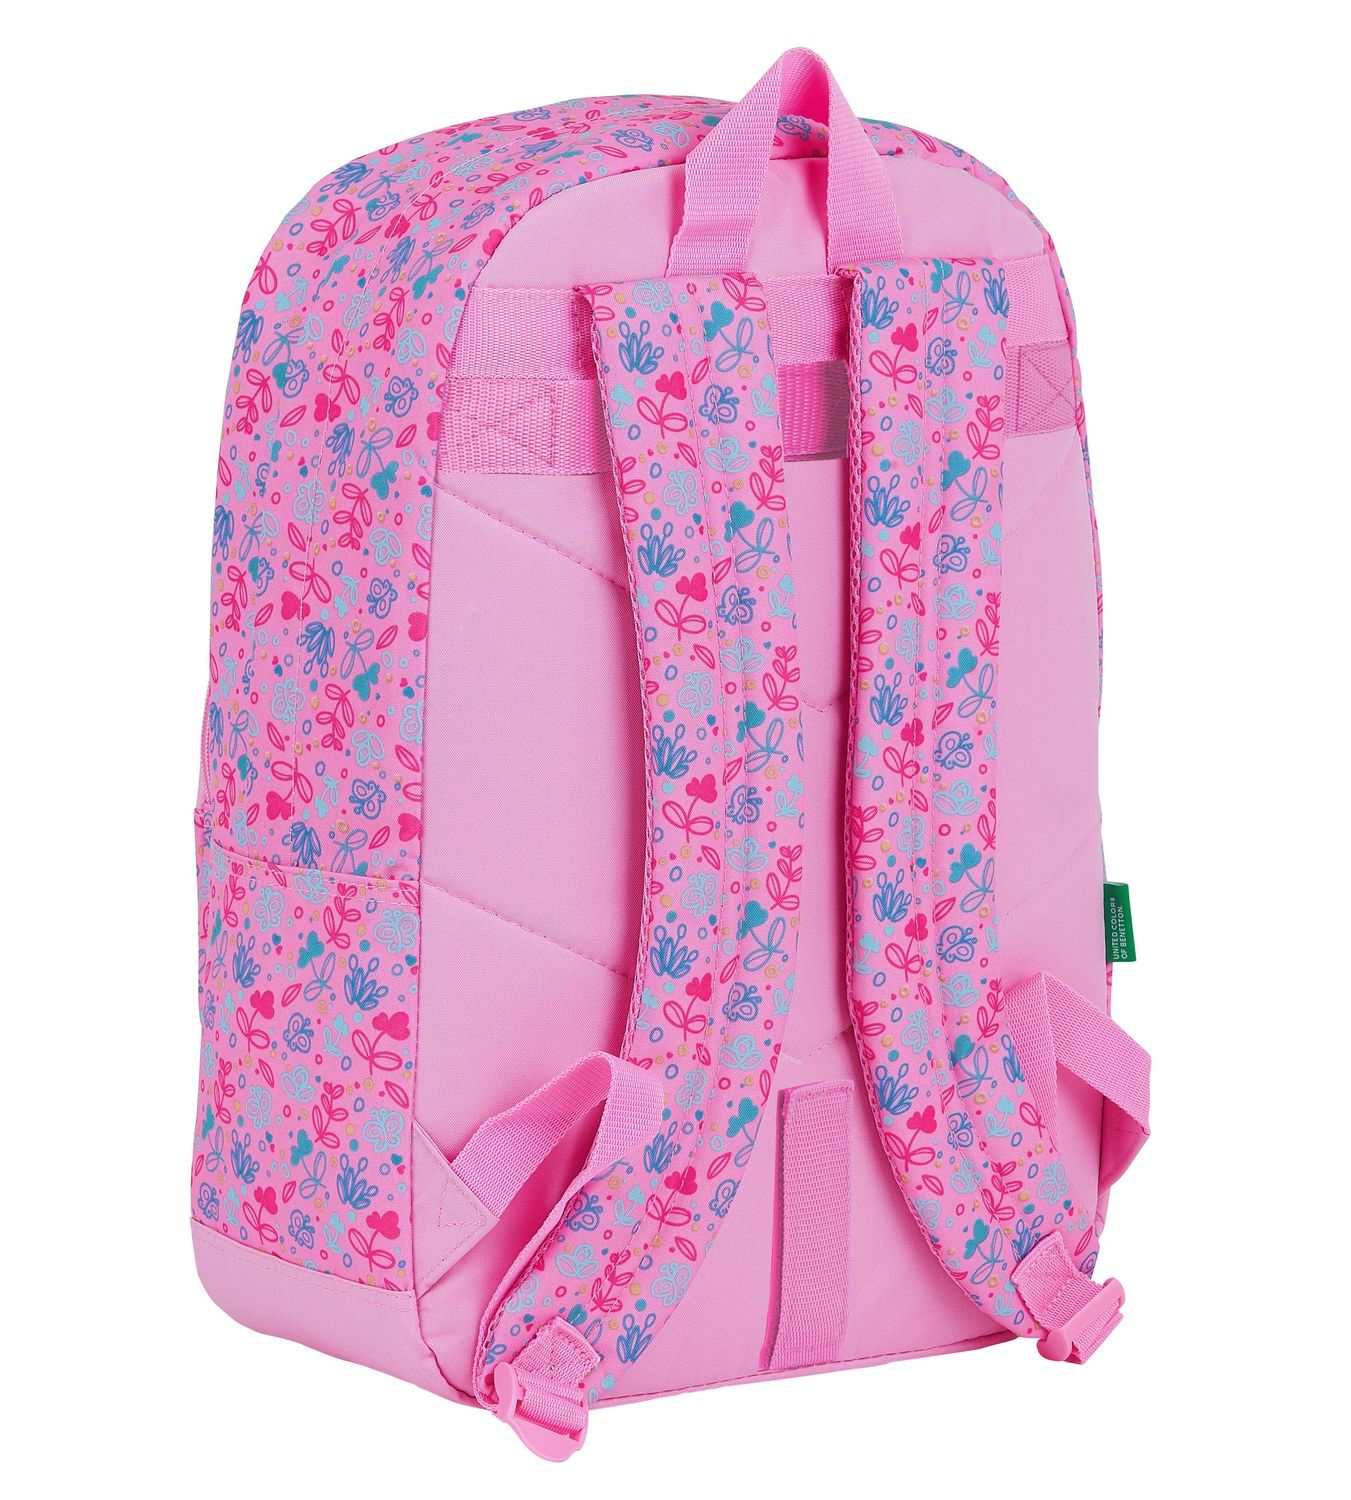 BENETTON Pink BUTTERFLIES Backpack Rucksack 43 cm – image 2